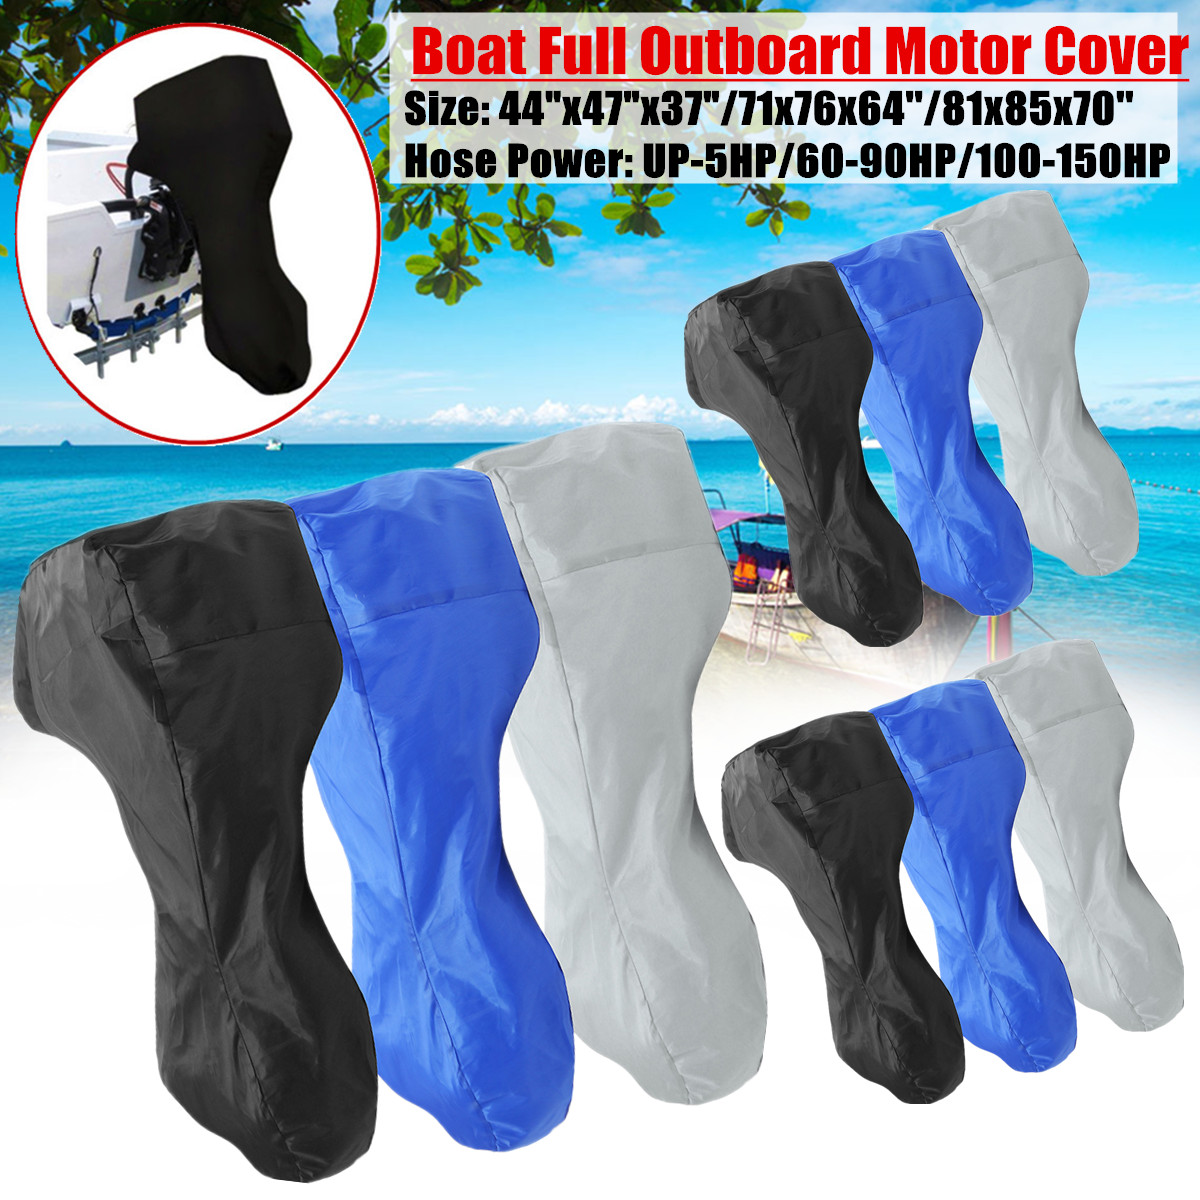 60-150HP Boat Engine Cover Full Outboard Motor Cover Waterproof Oxford Cloth 3 Color/Size image